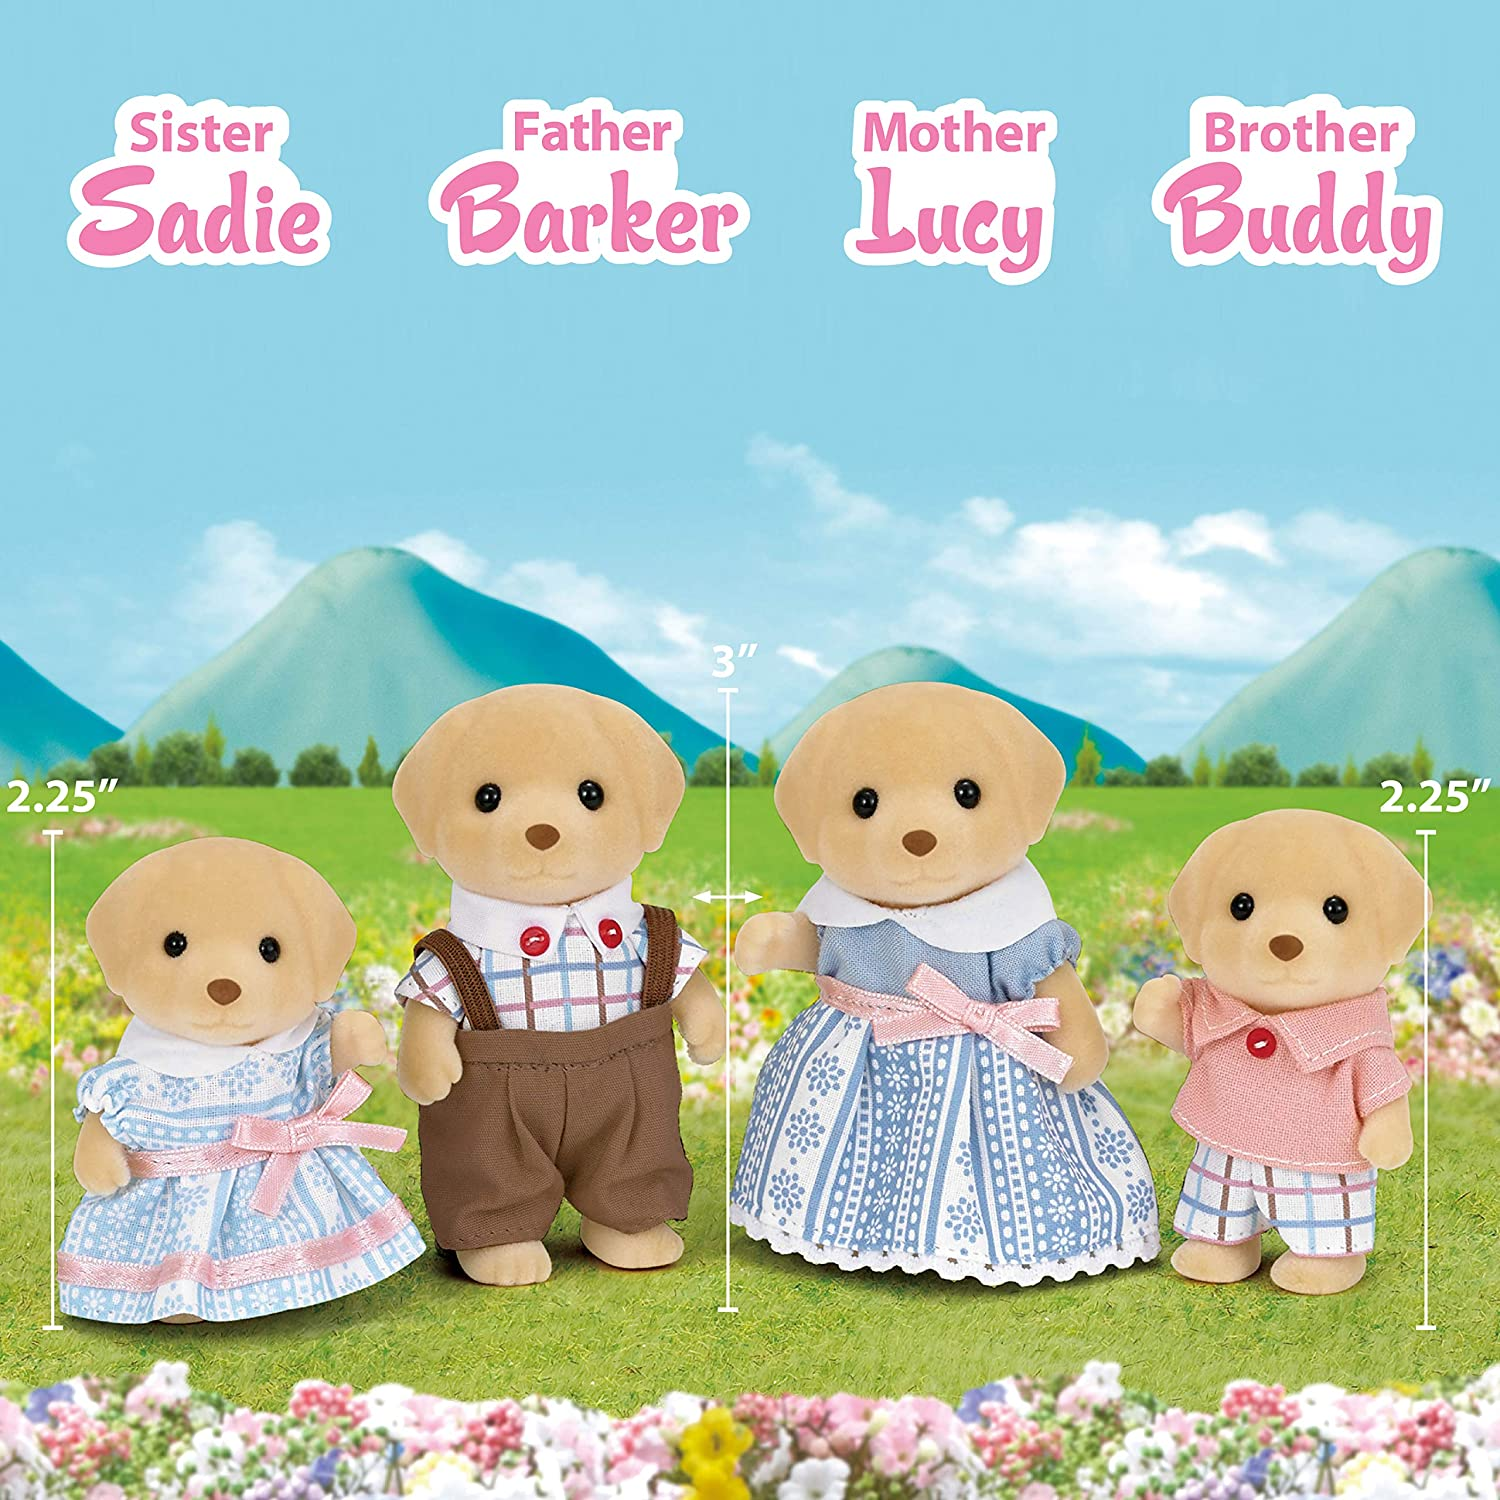 CALICO CRITTERS YELLOW LABRADOR FAMILY NEW IN BOX